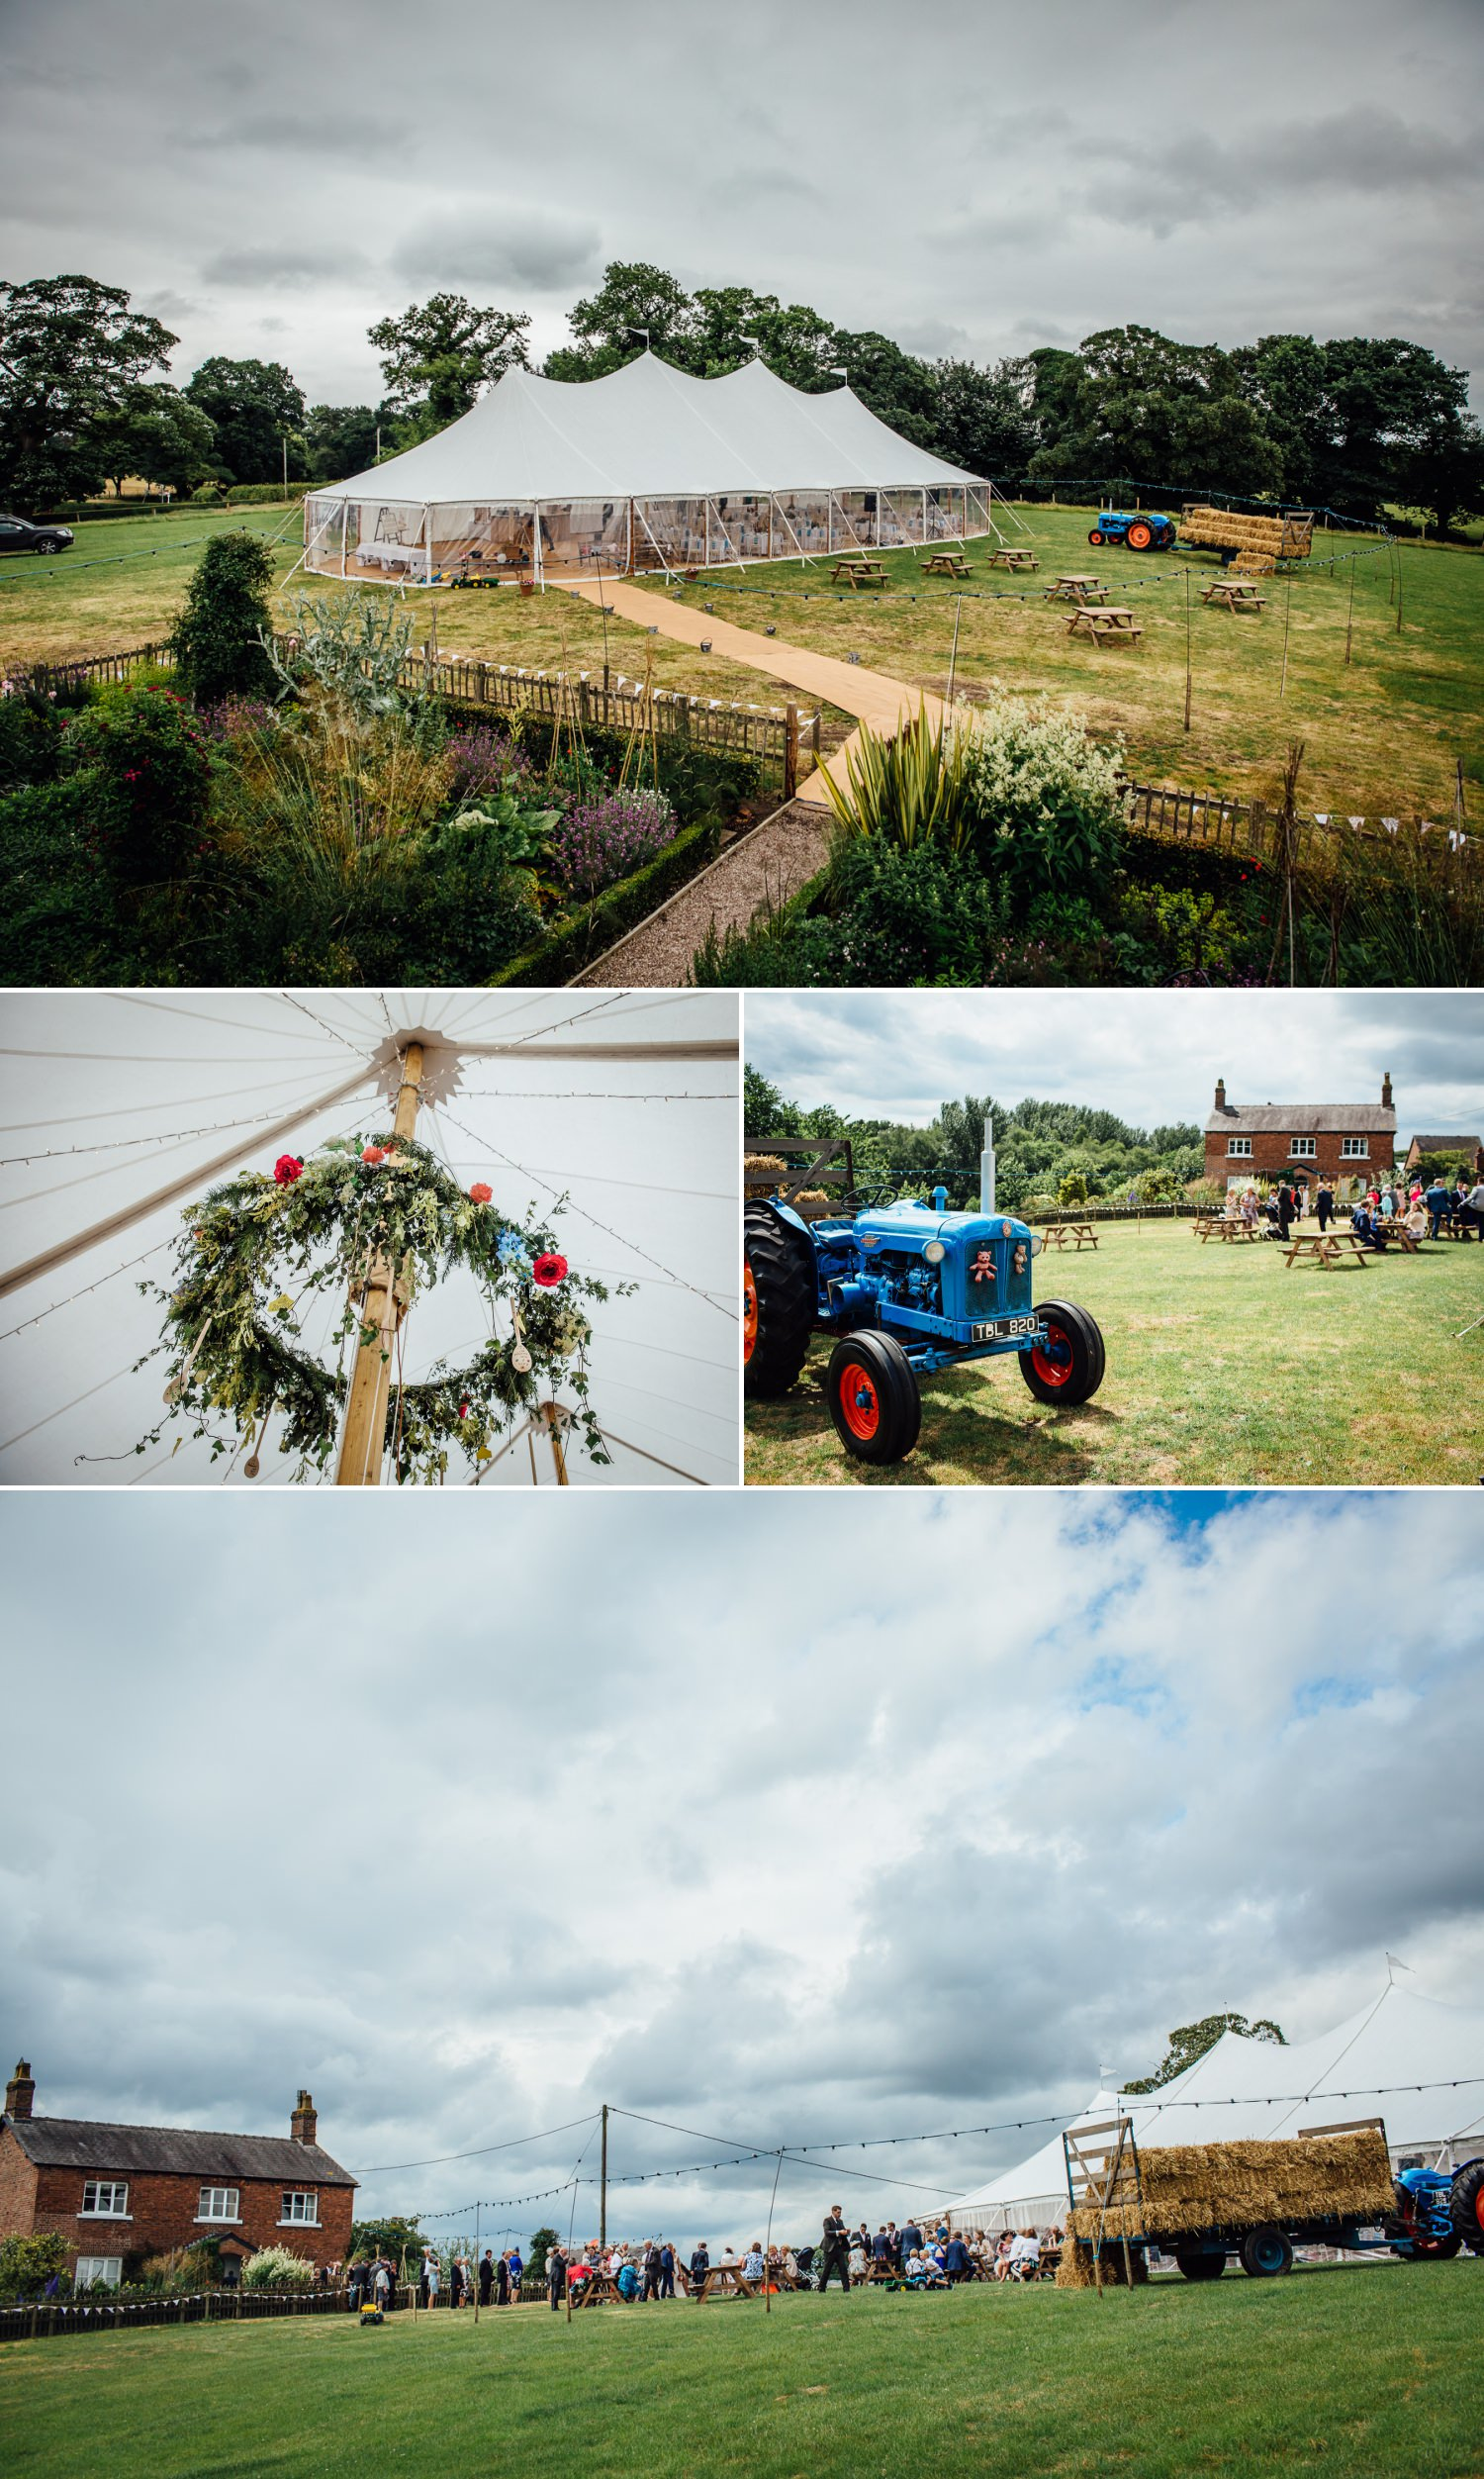 Photograph of Marquee at farm wedding in Macclesfield, Cheshire